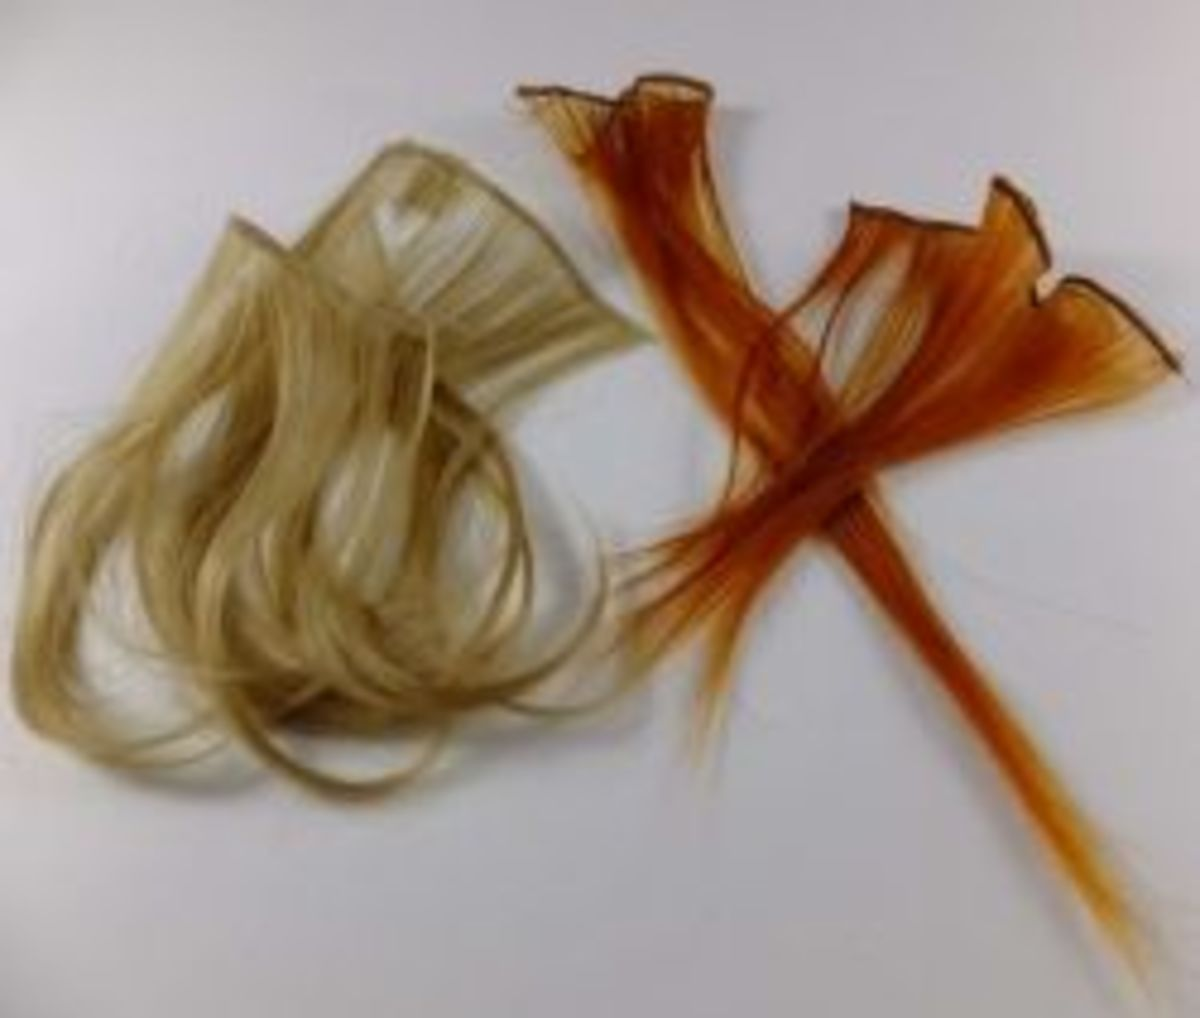 strands of hair from the wig